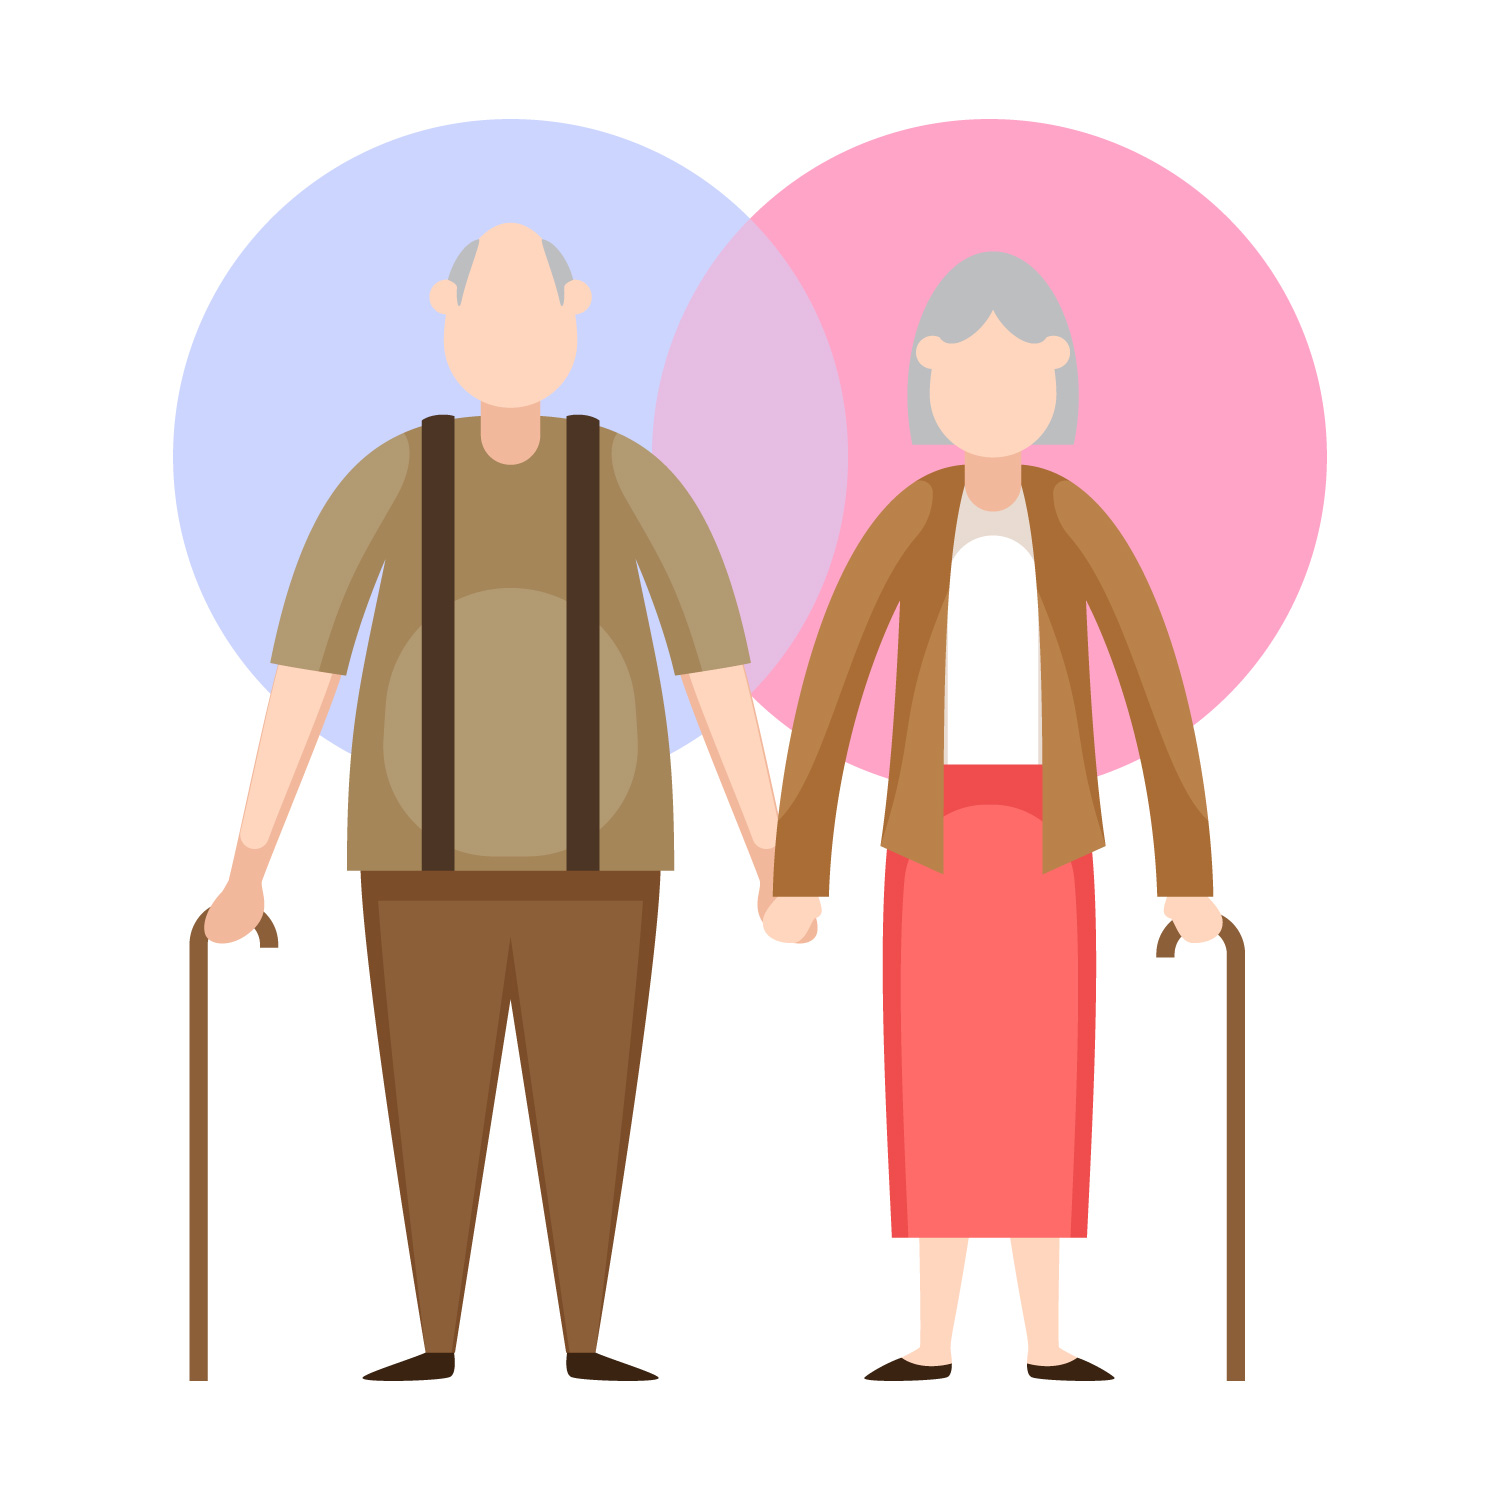 Graphic of elderly man and woman holding hands